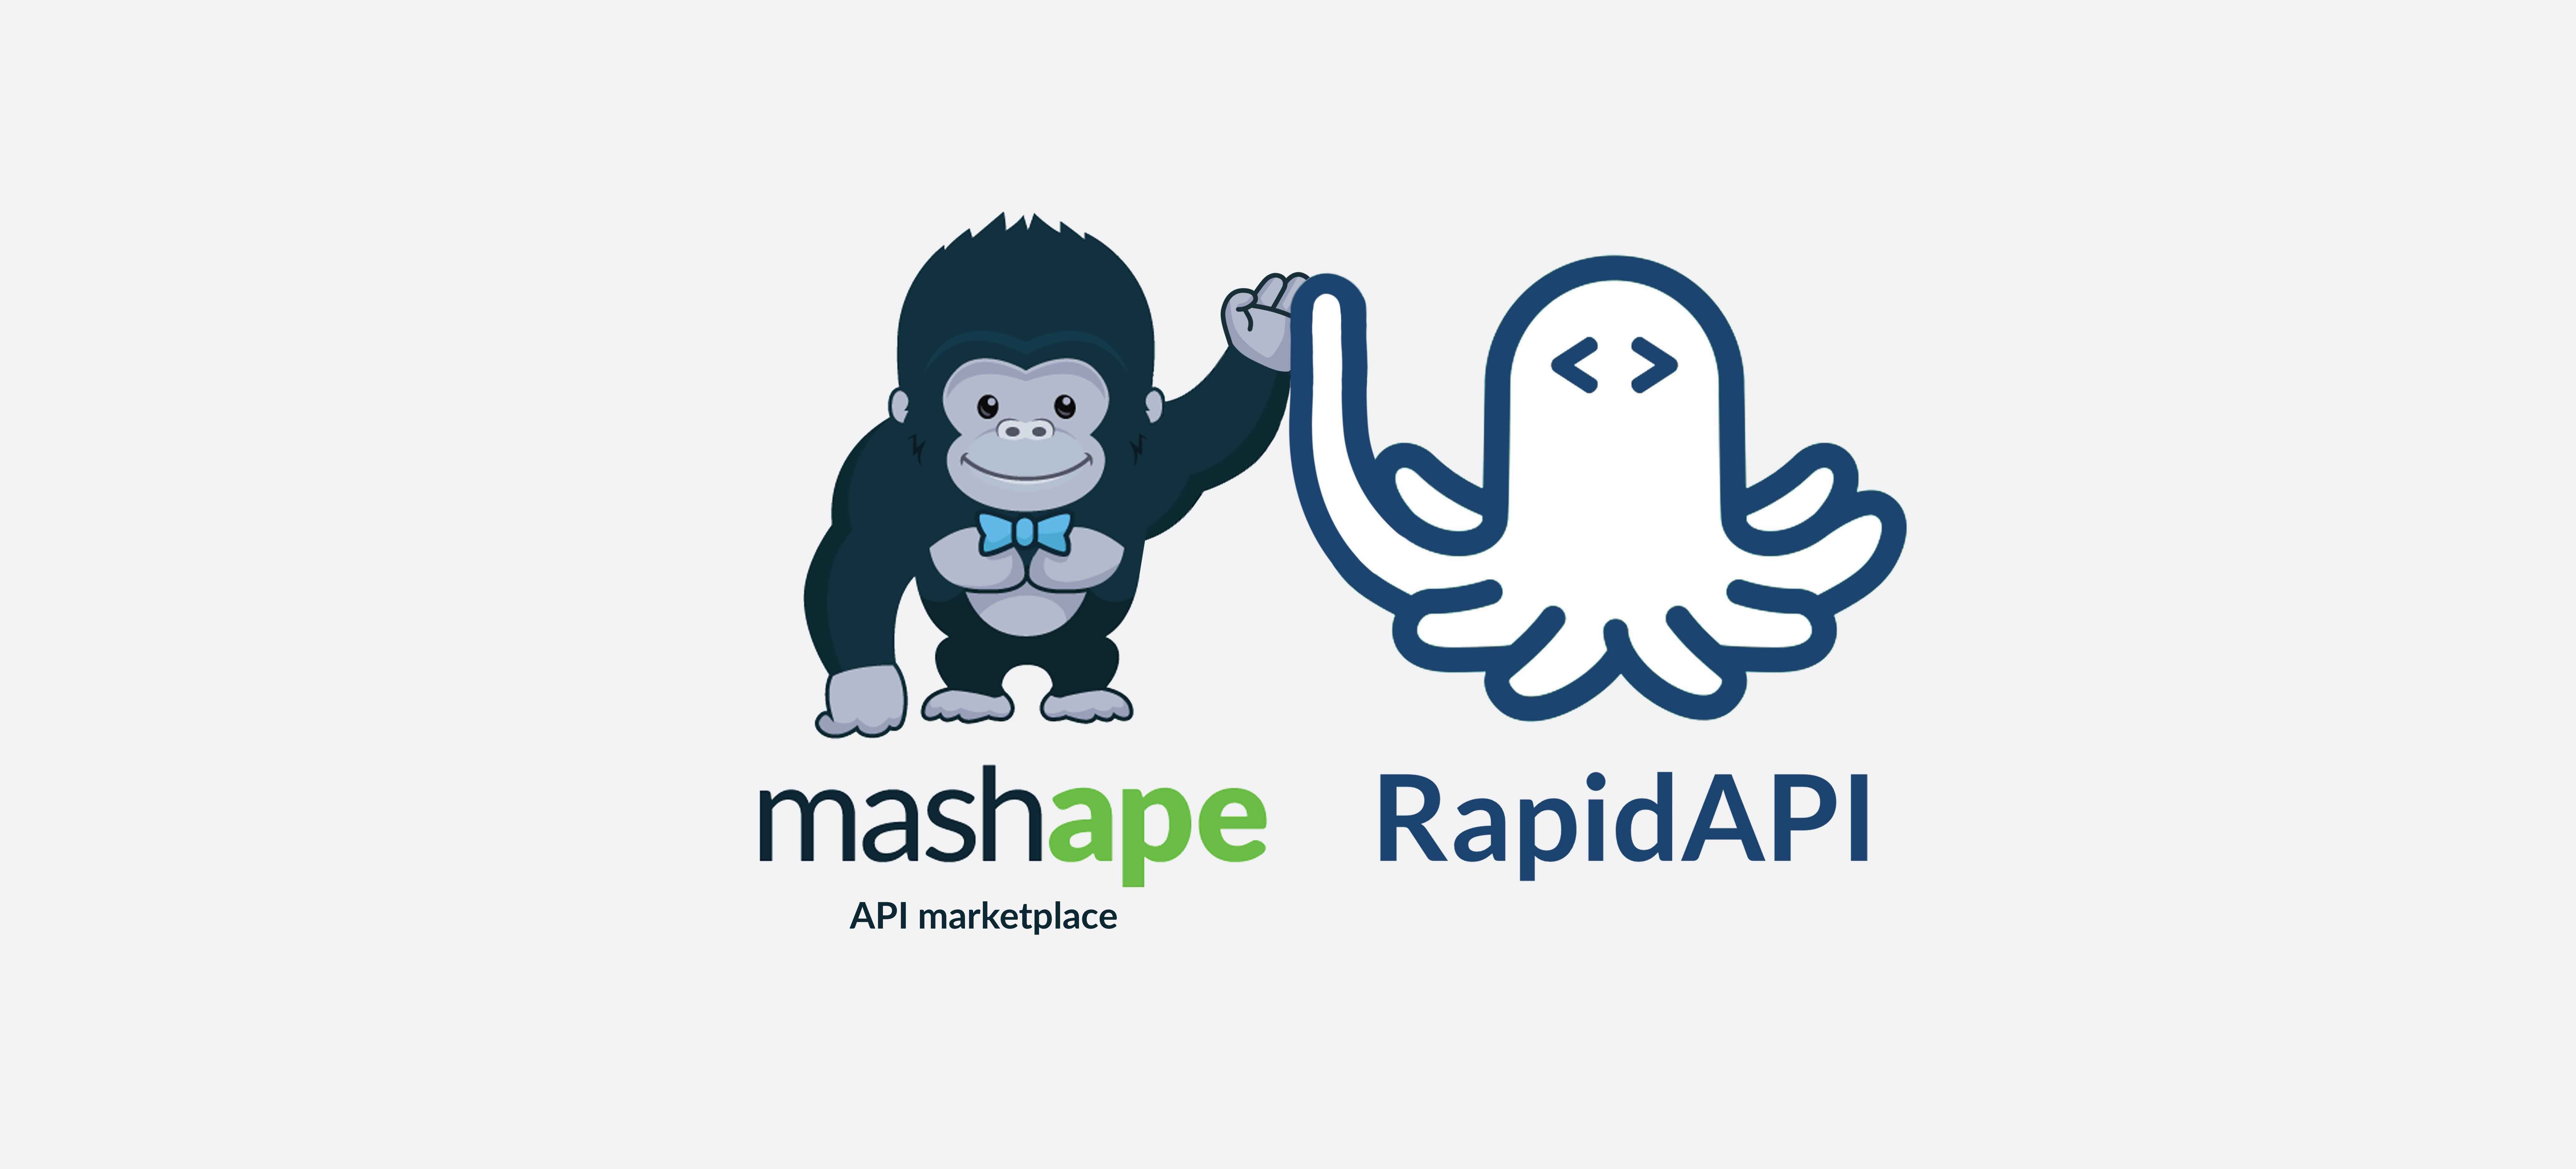 rapid_mashape-with-text